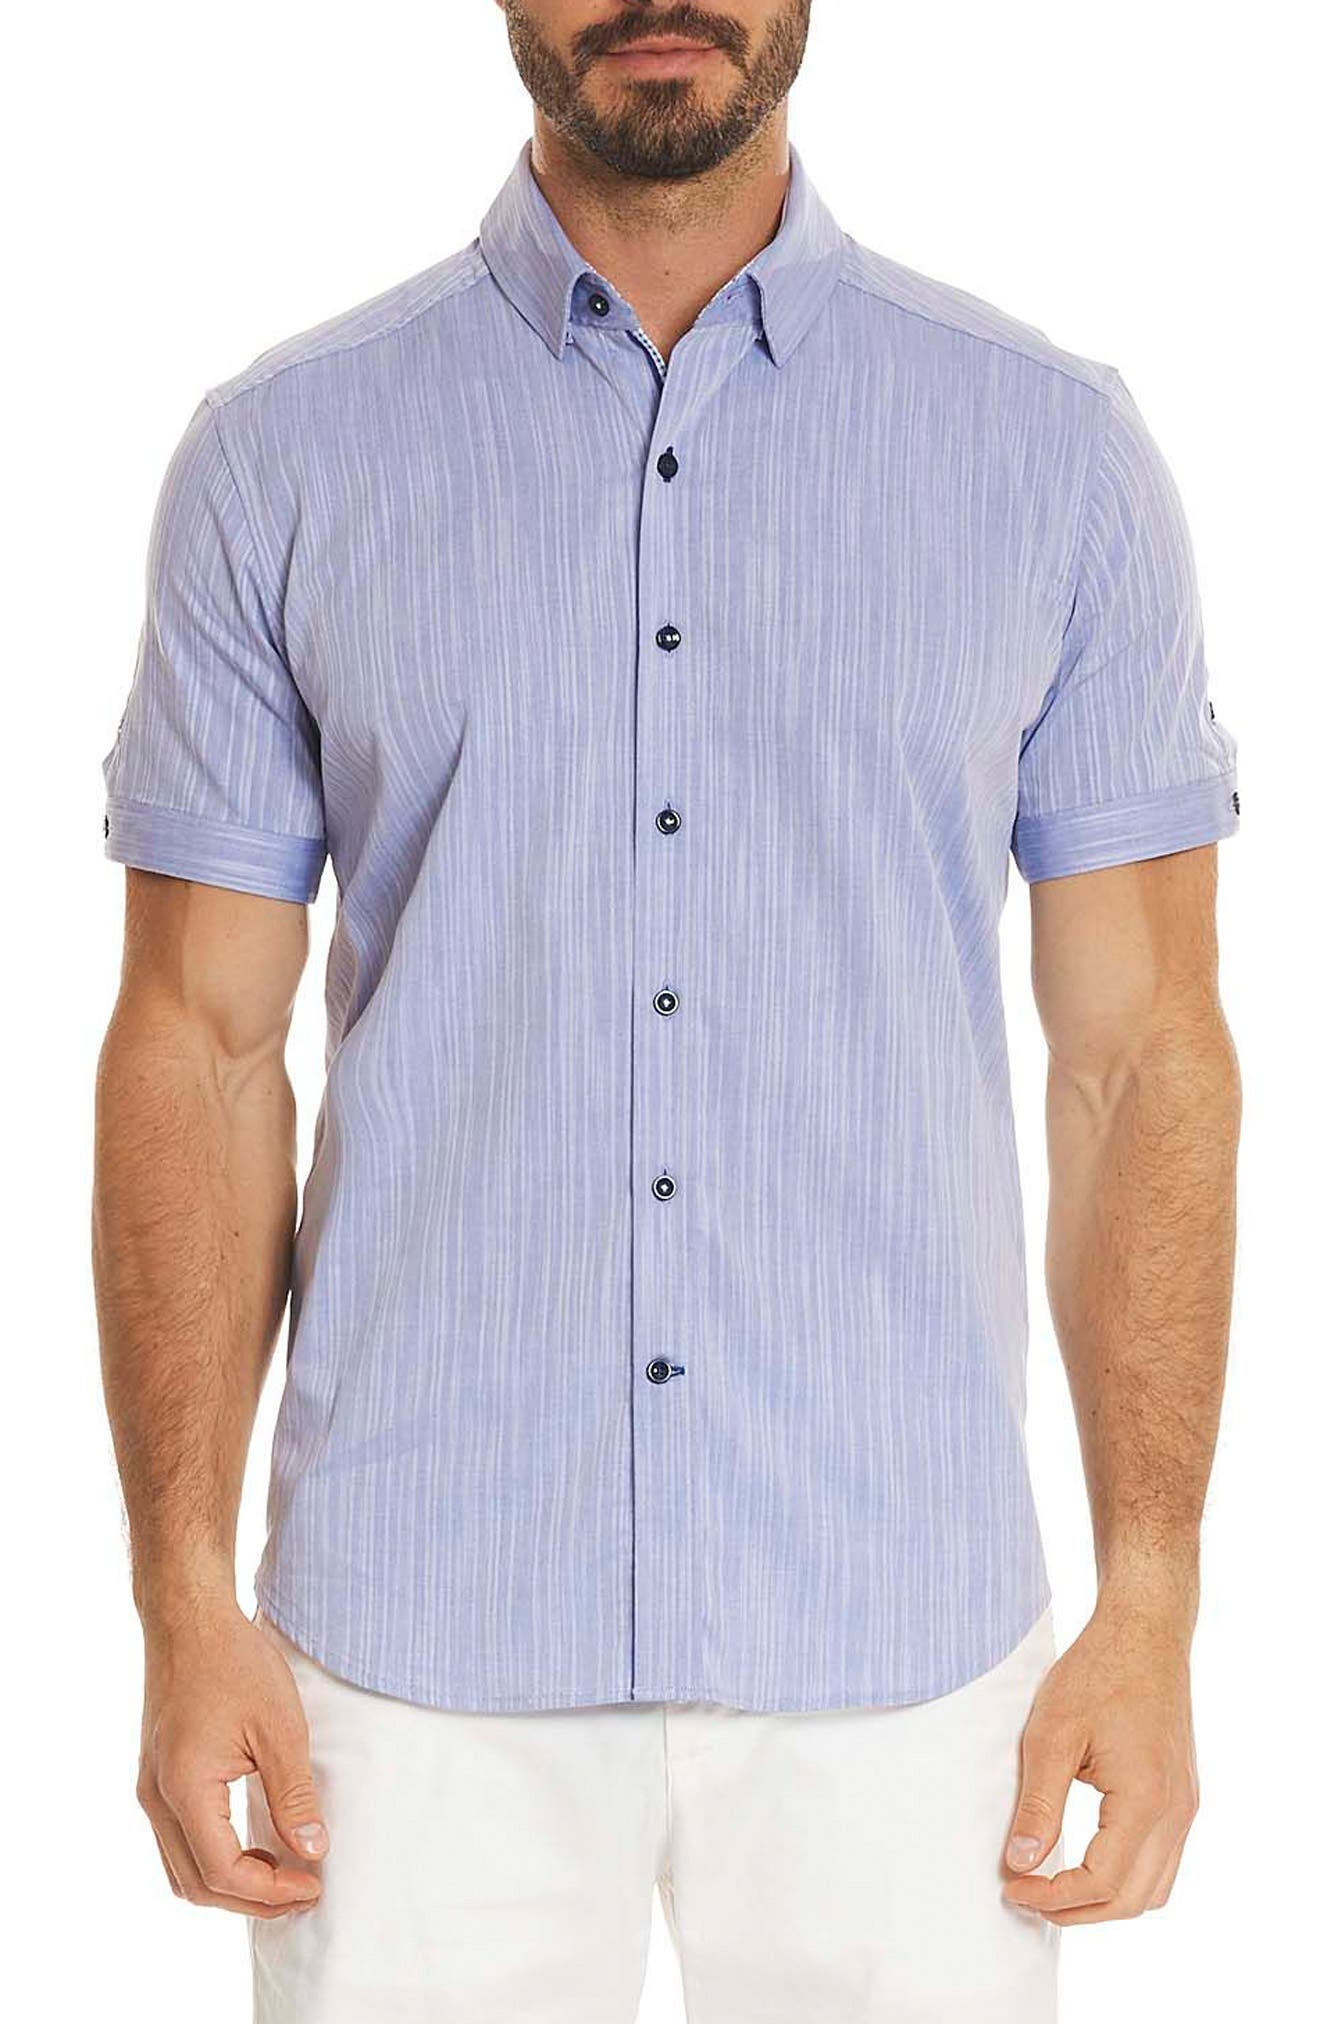 Robert Graham Livingston Regular Fit Short Sleeve Sport Shirt